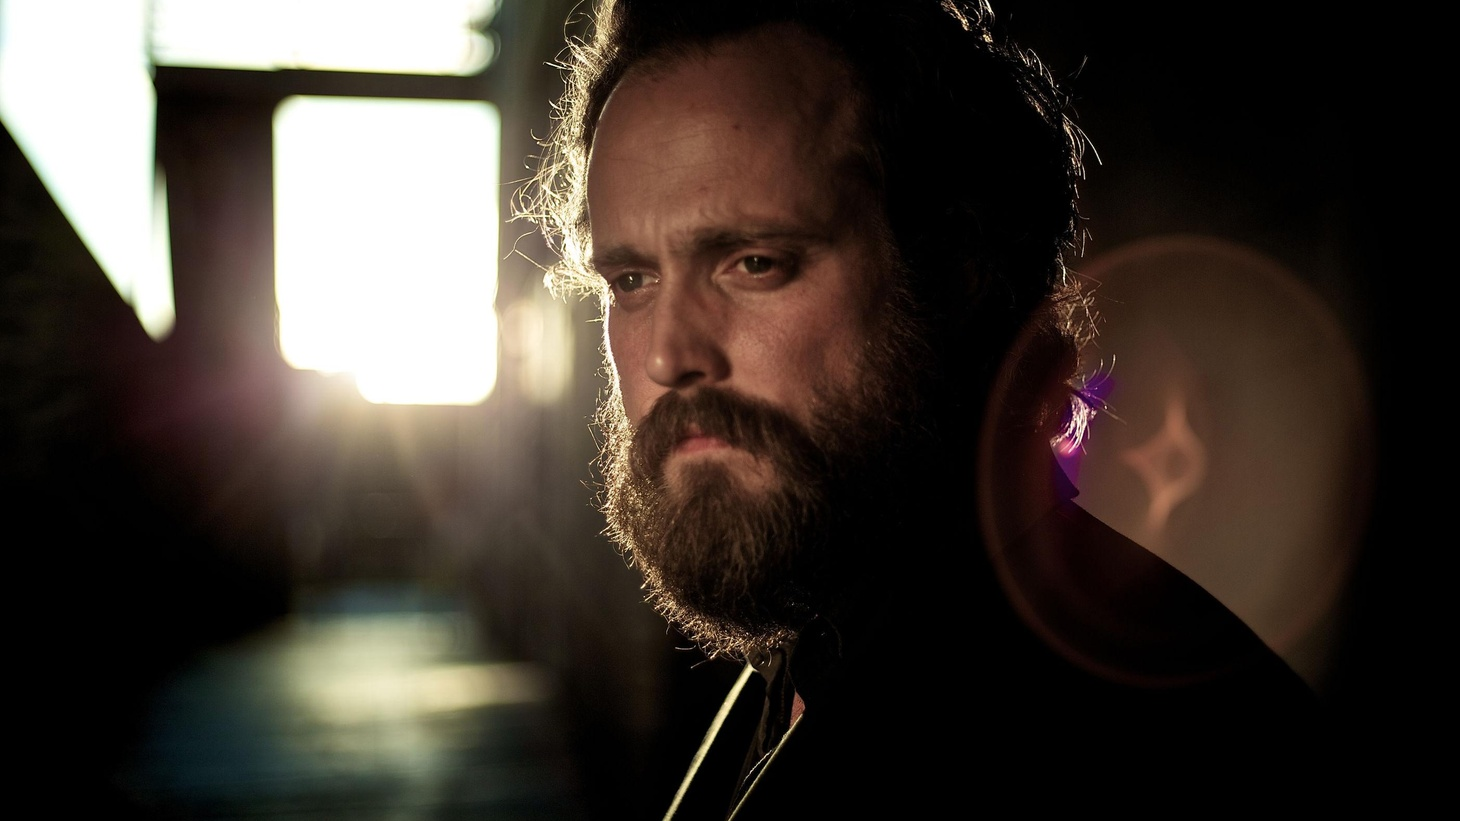 One of KCRW's favorite artists, Iron & Wine, has a new album on the horizon...